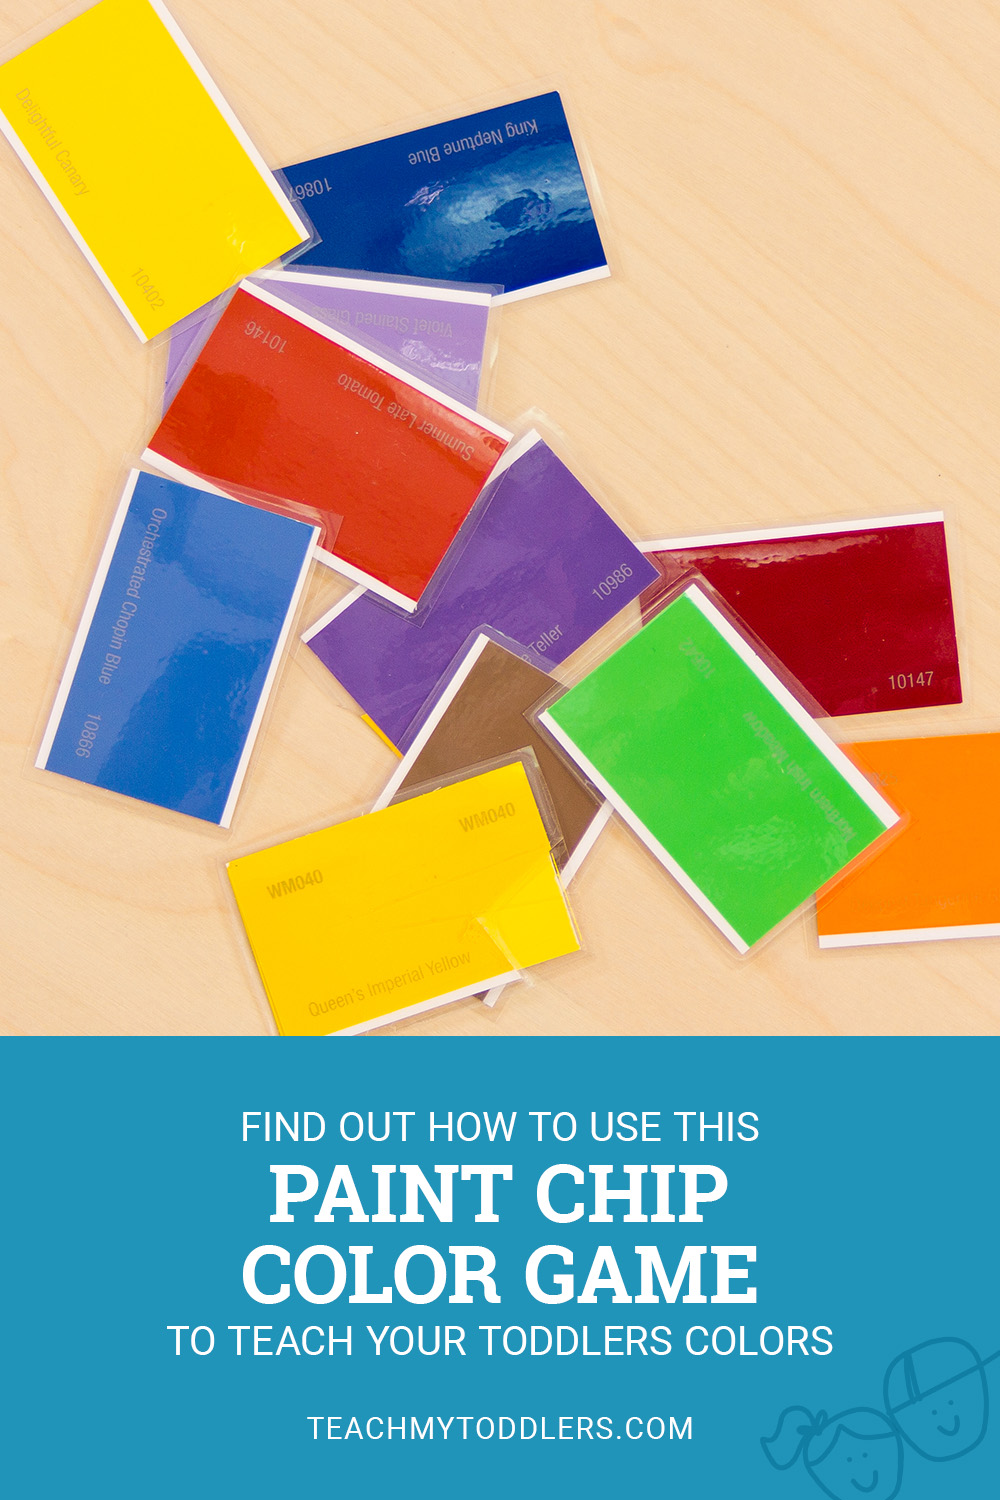 Find out how to use this paint chip color game to teach your toddlers colors